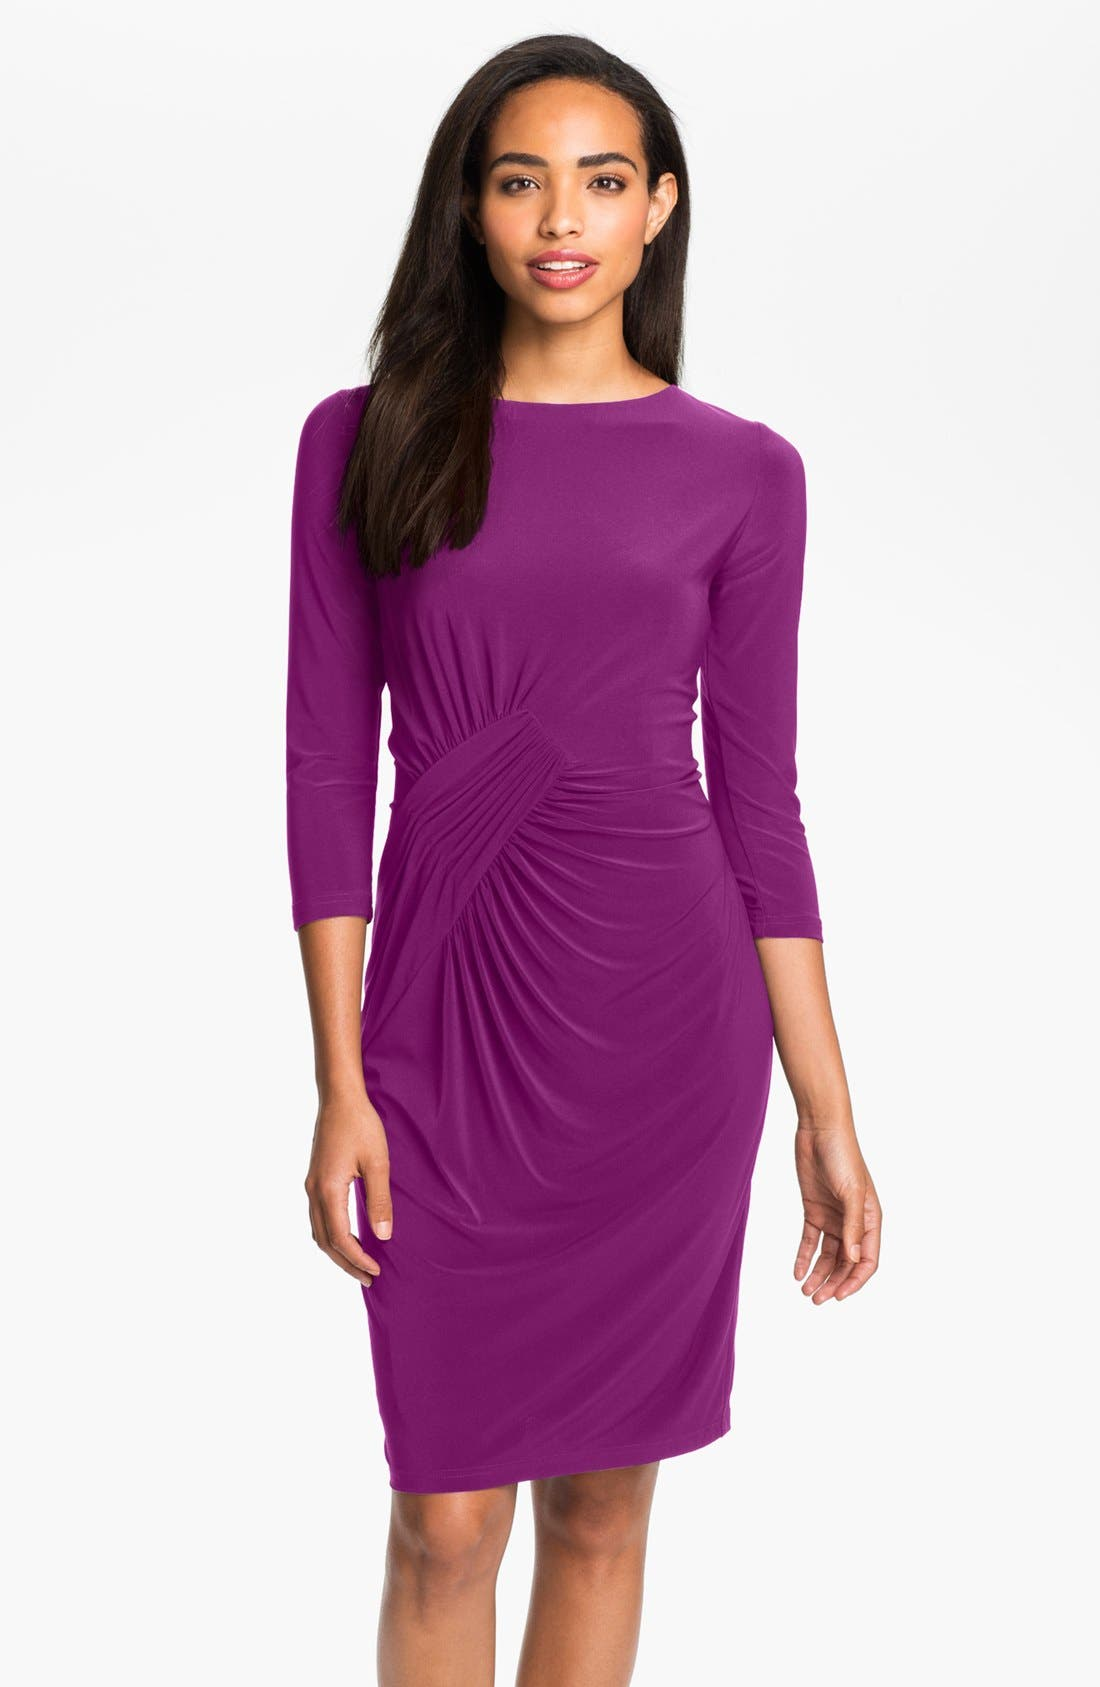 Alternate Image 1 Selected - Adrianna Papell Asymmetrically Ruched Jersey Dress (Petite)